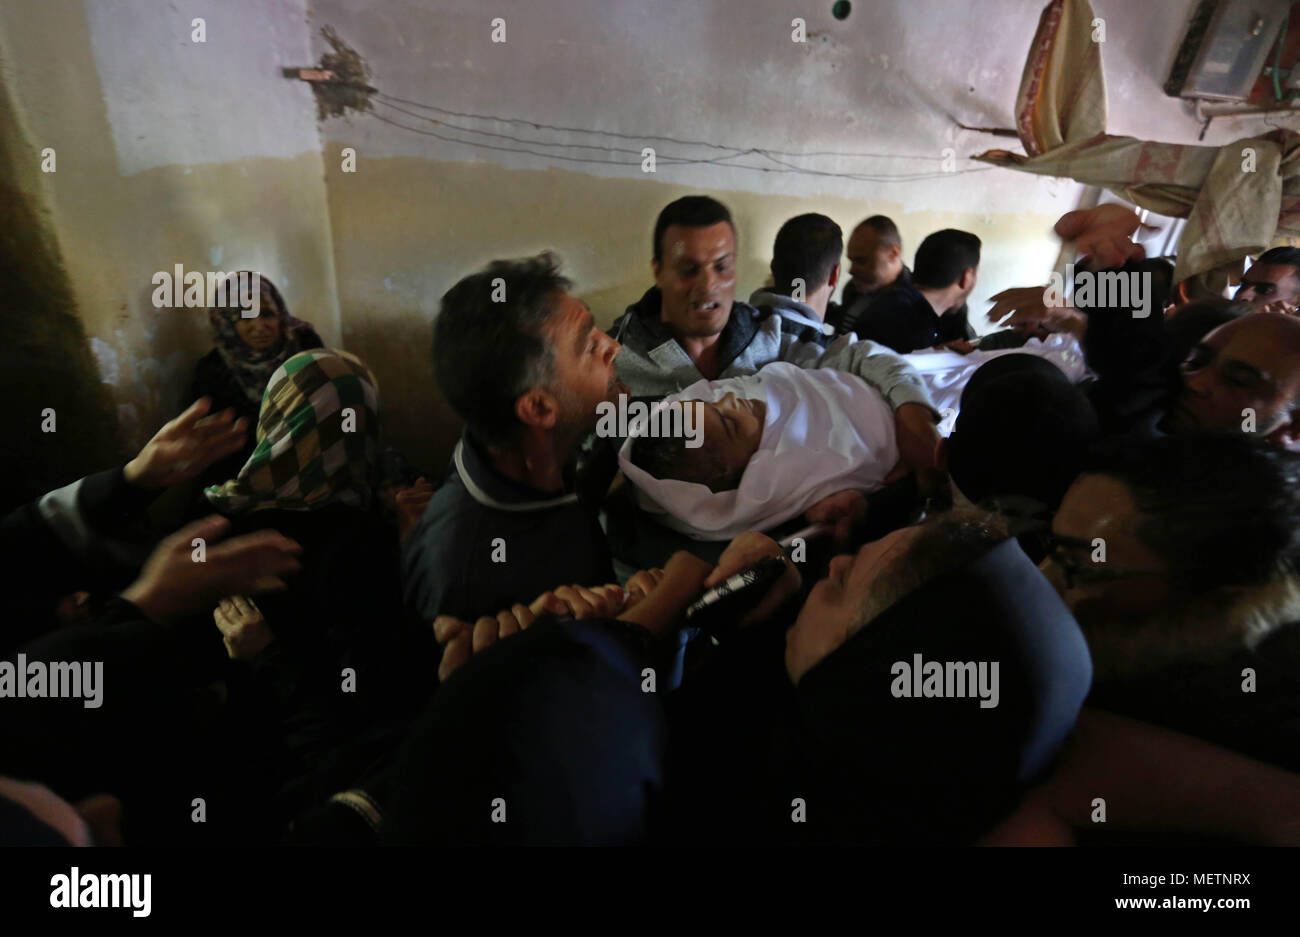 Fantastic Gaza Eid Al-Fitr 2018 - khan-yunis-gaza-strip-palestinian-territory-23rd-apr-2018-relatives-of-a-palestinian-deaf-tahreer-wahba-18-who-was-died-from-his-injuries-after-being-shot-in-the-head-by-israeli-security-forces-during-clashes-on-april-6-mourn-over-his-body-during-his-funeral-in-khan-yunis-in-the-southern-gaza-strip-on-april-23-2018-credit-ashraf-amraapa-imageszuma-wirealamy-live-news-METNRX  Perfect Image Reference_26939 .jpg